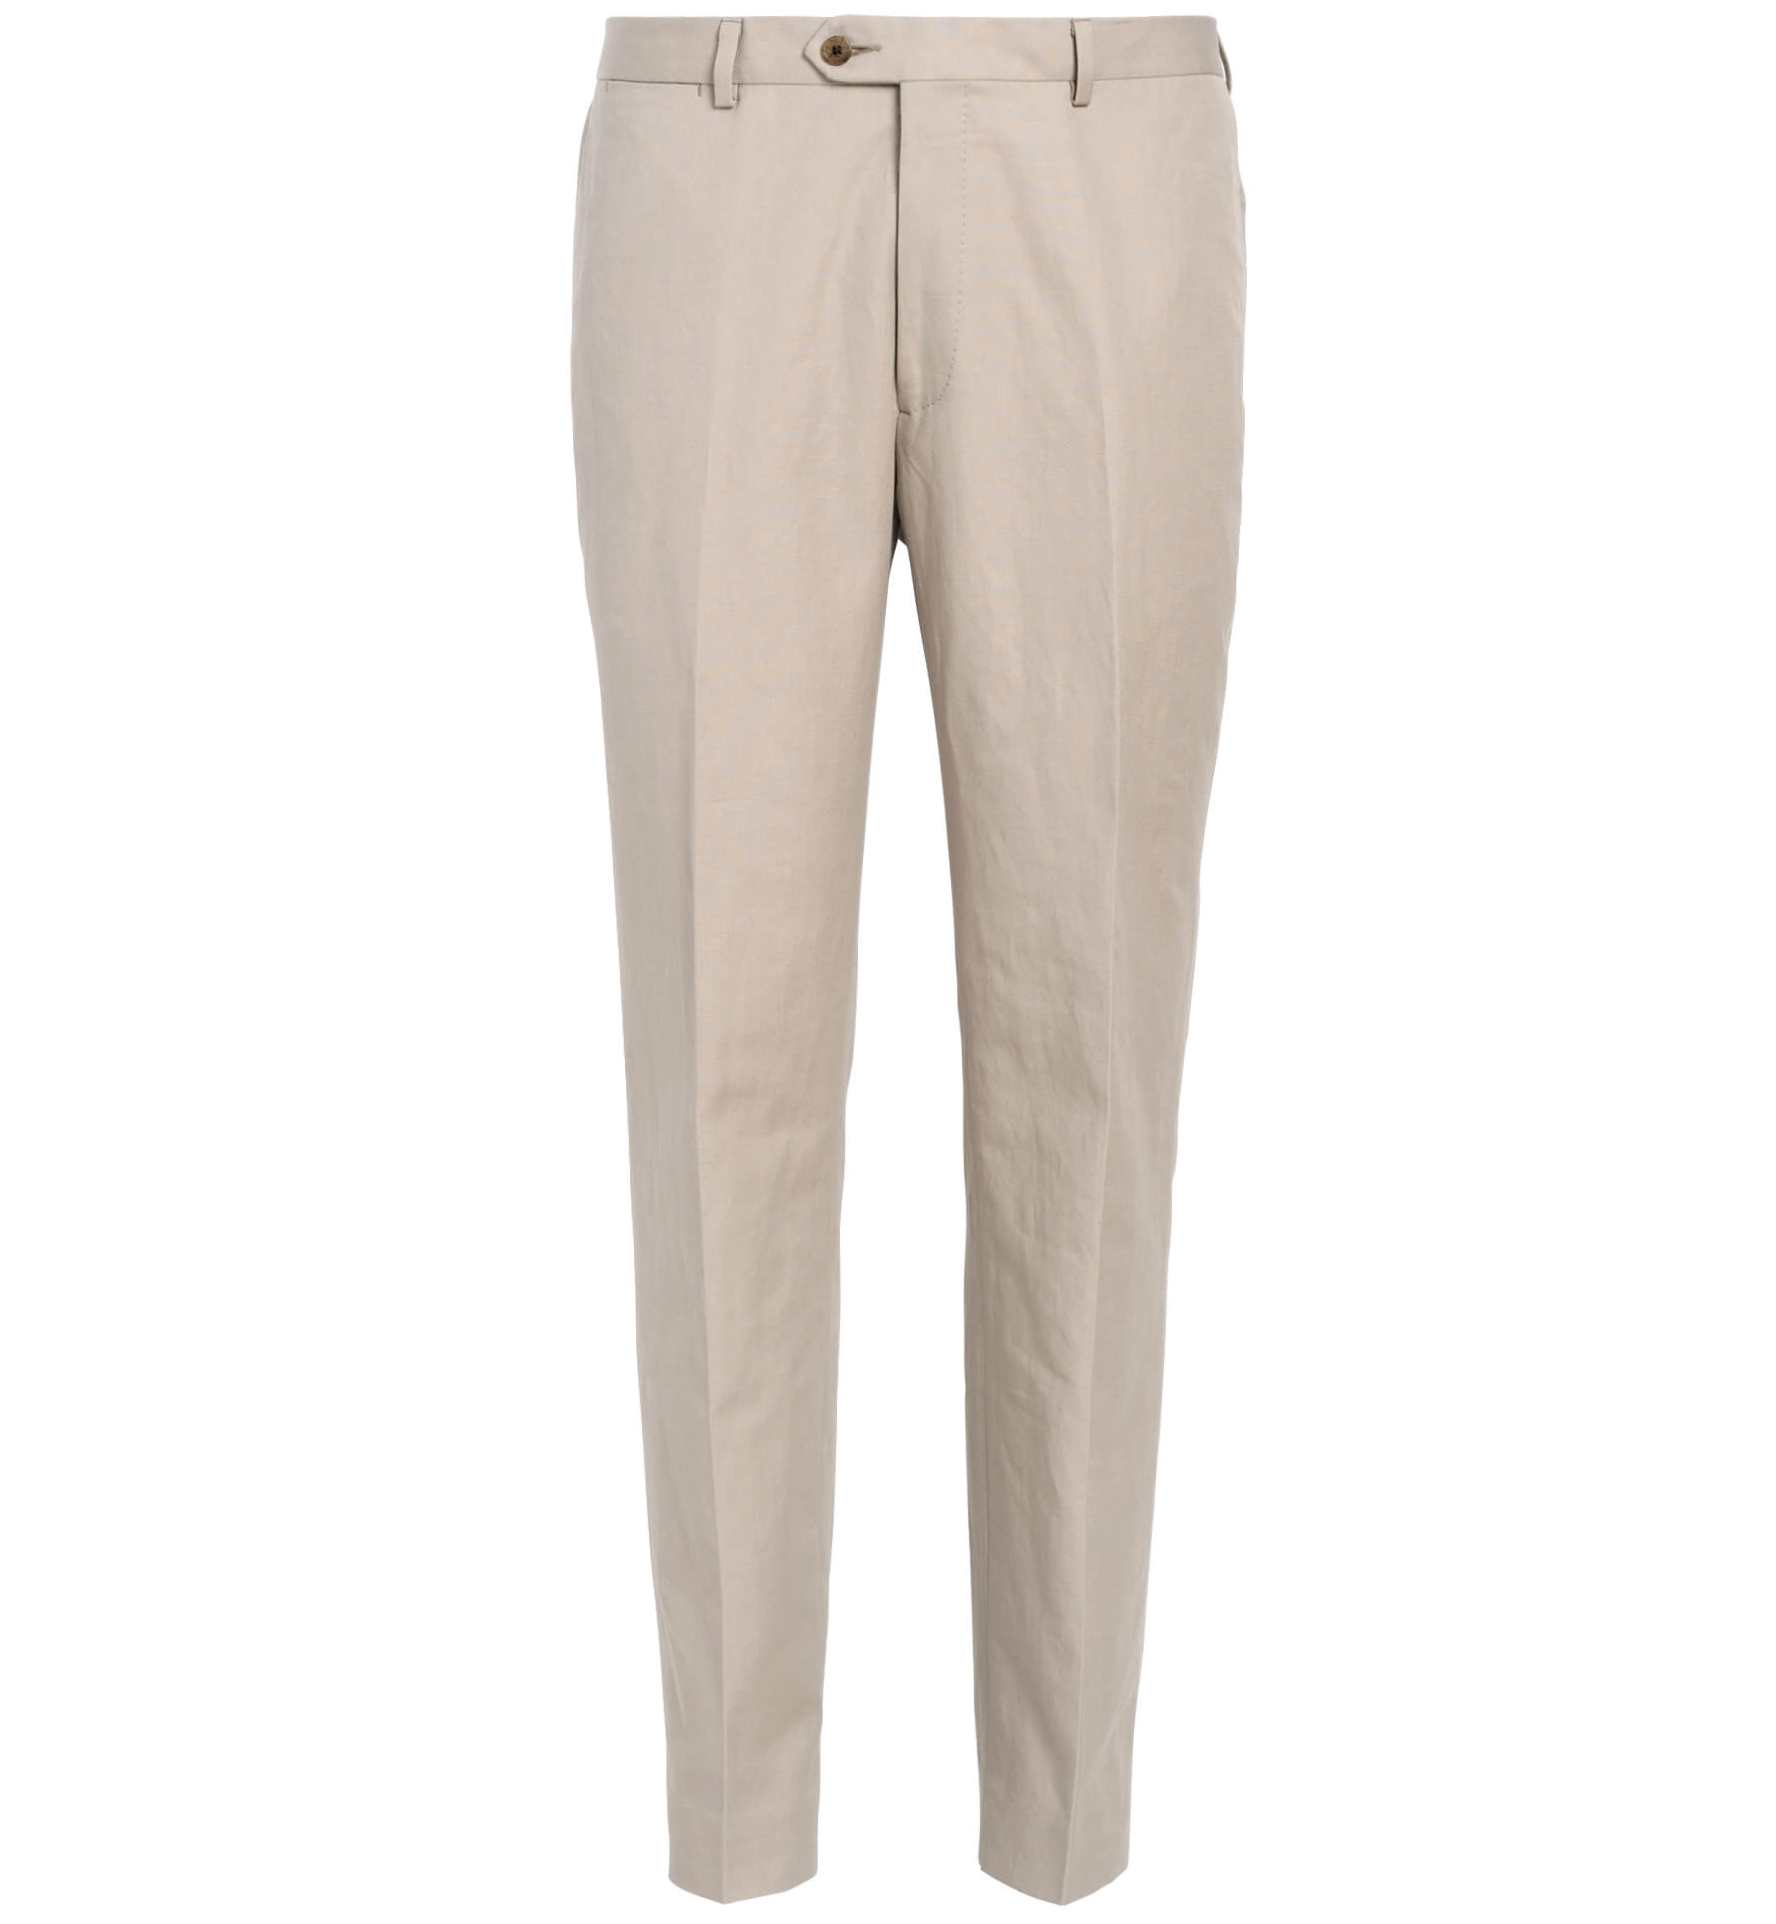 Zoom Image of Allen Sand Cotton and Linen Canvas Trouser